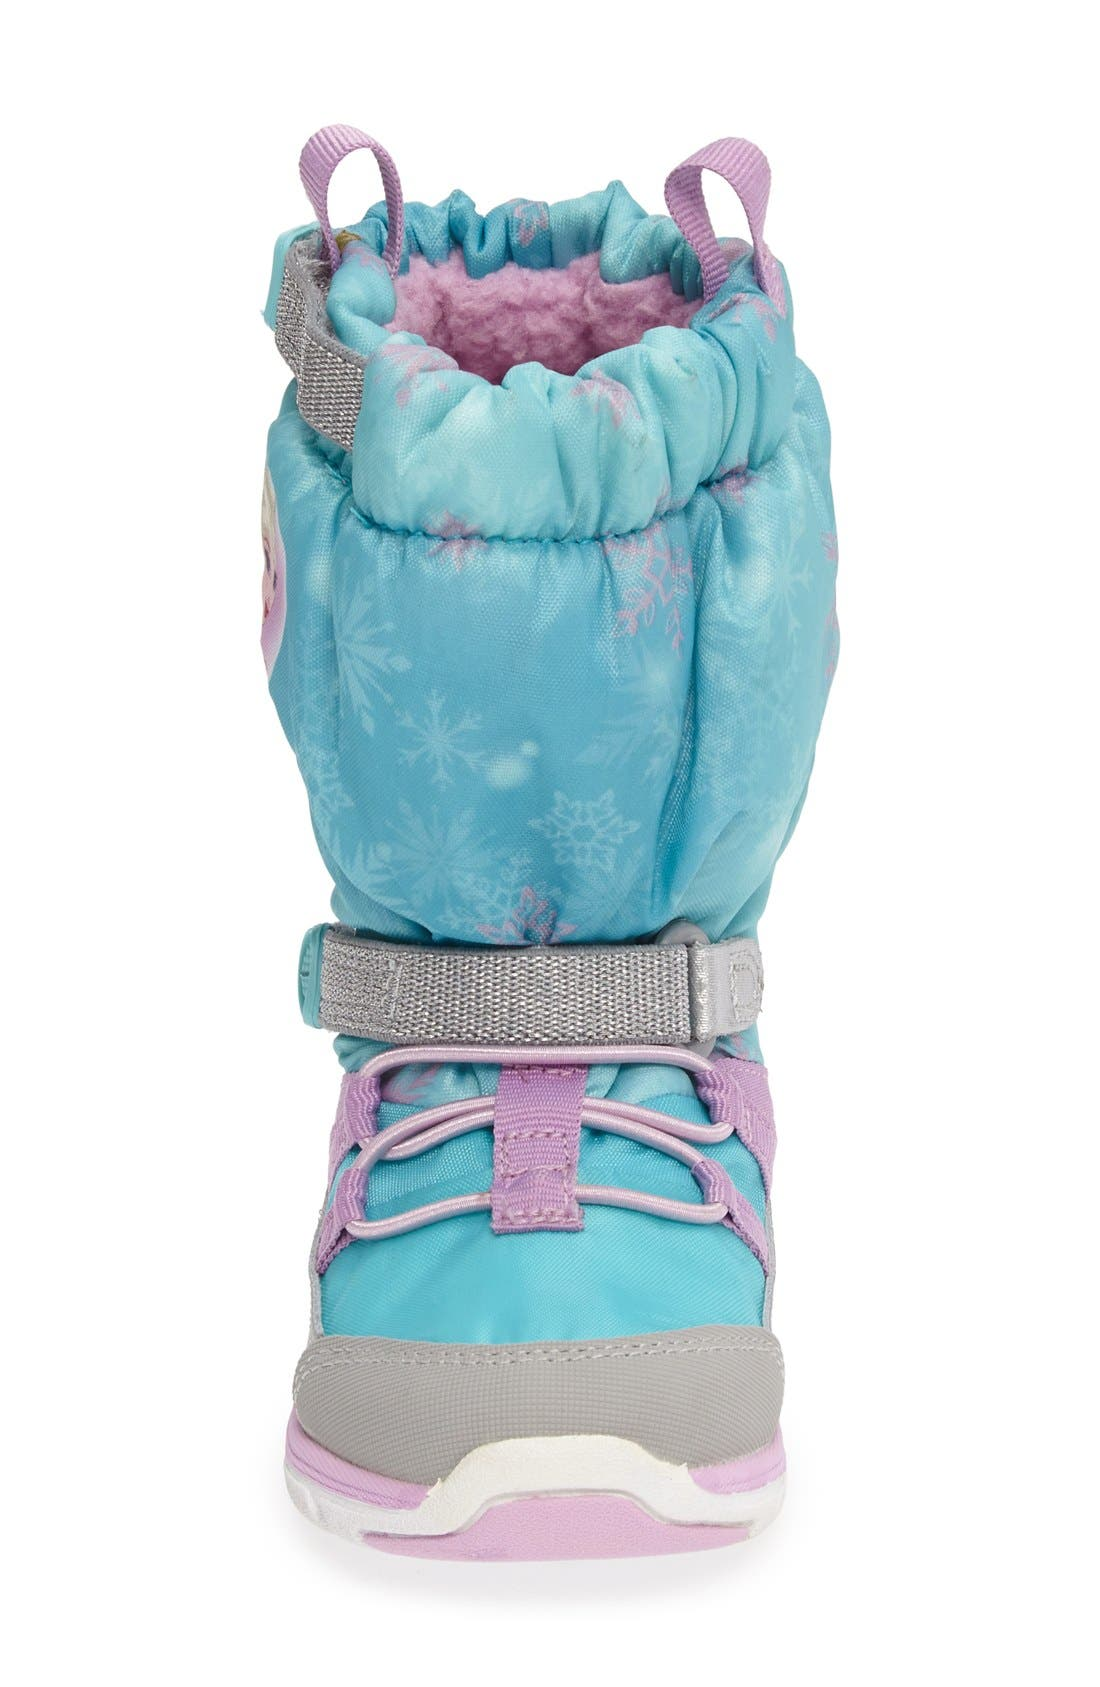 Disney<sup>®</sup> Frozen Made2Play Sneaker Boot,                             Alternate thumbnail 6, color,                             452